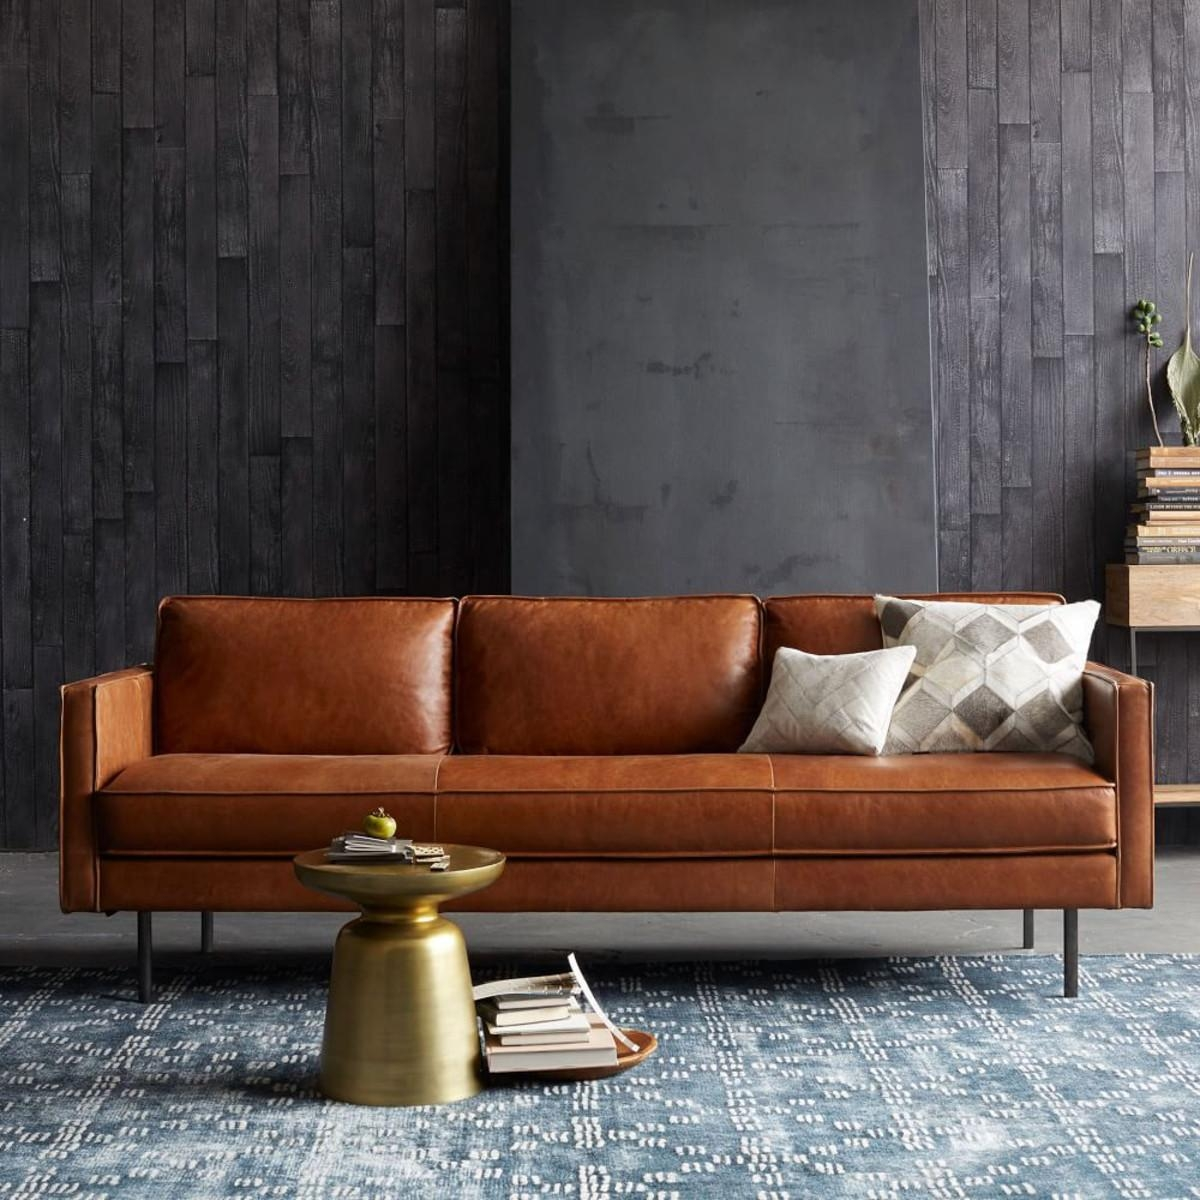 6 Of The Besttan Leather Sofas On The High Street | Design Seeker For Aniline Leather Sofas (Image 2 of 20)